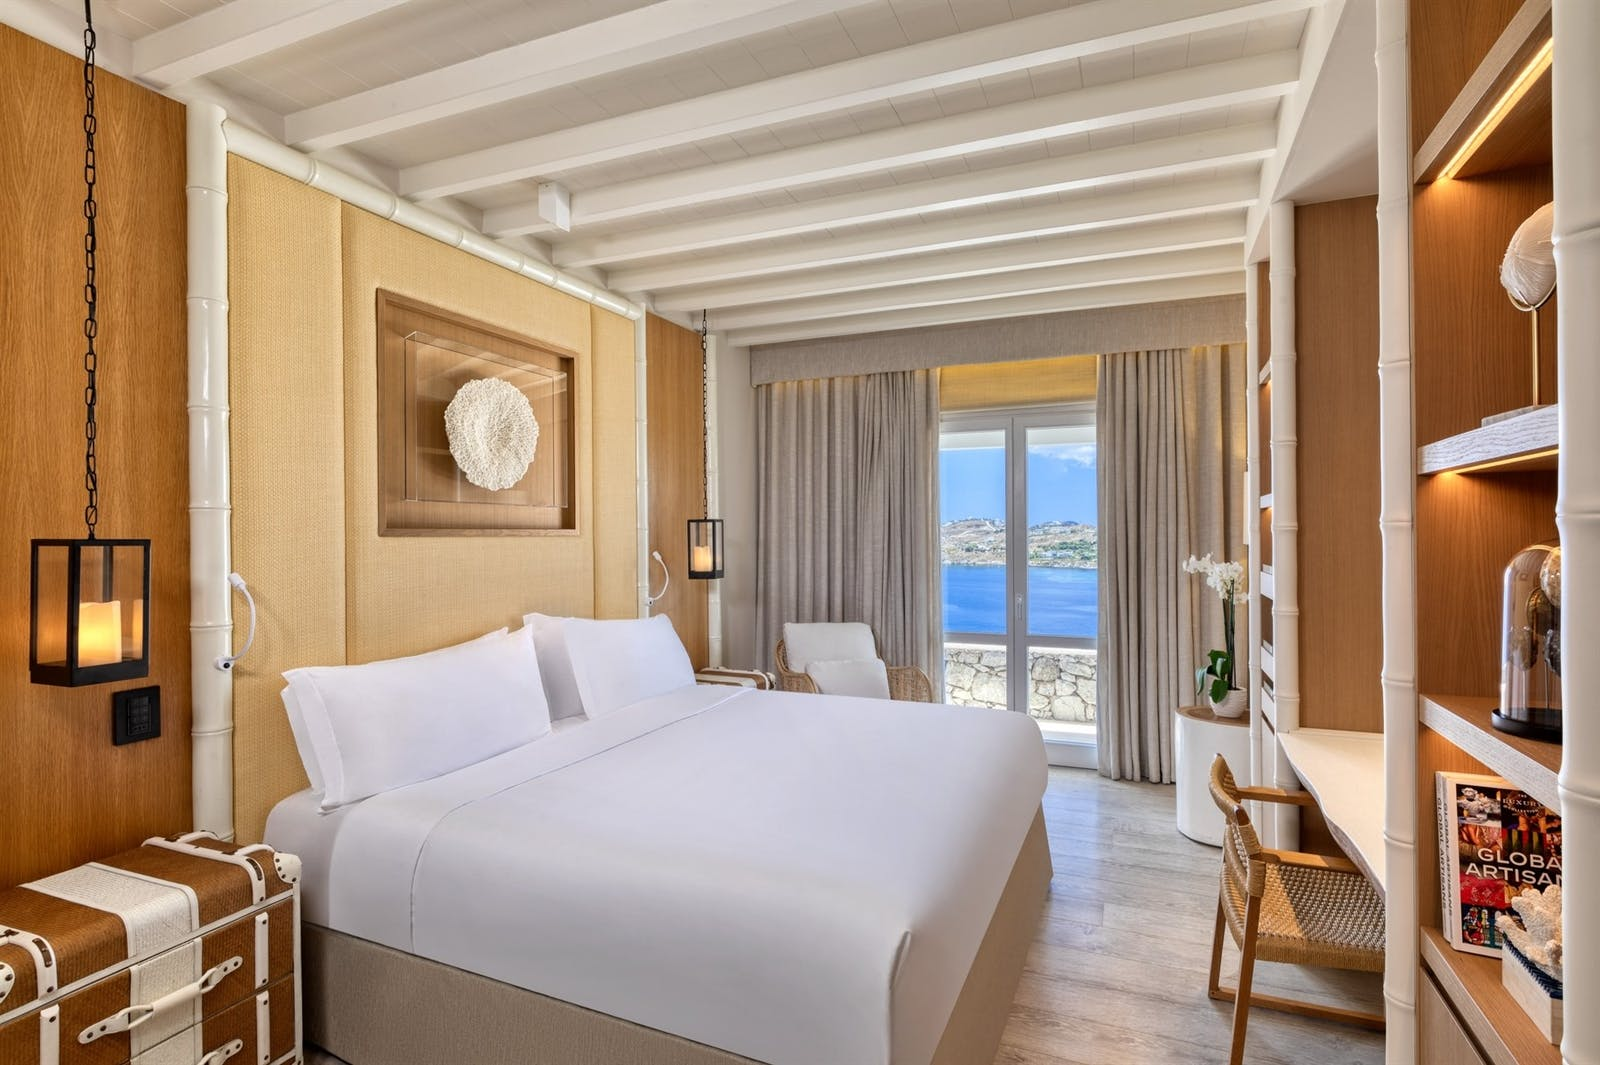 Deluxe Seaview Room, Santa Marina, A Luxury Collection Resort, Mykonos